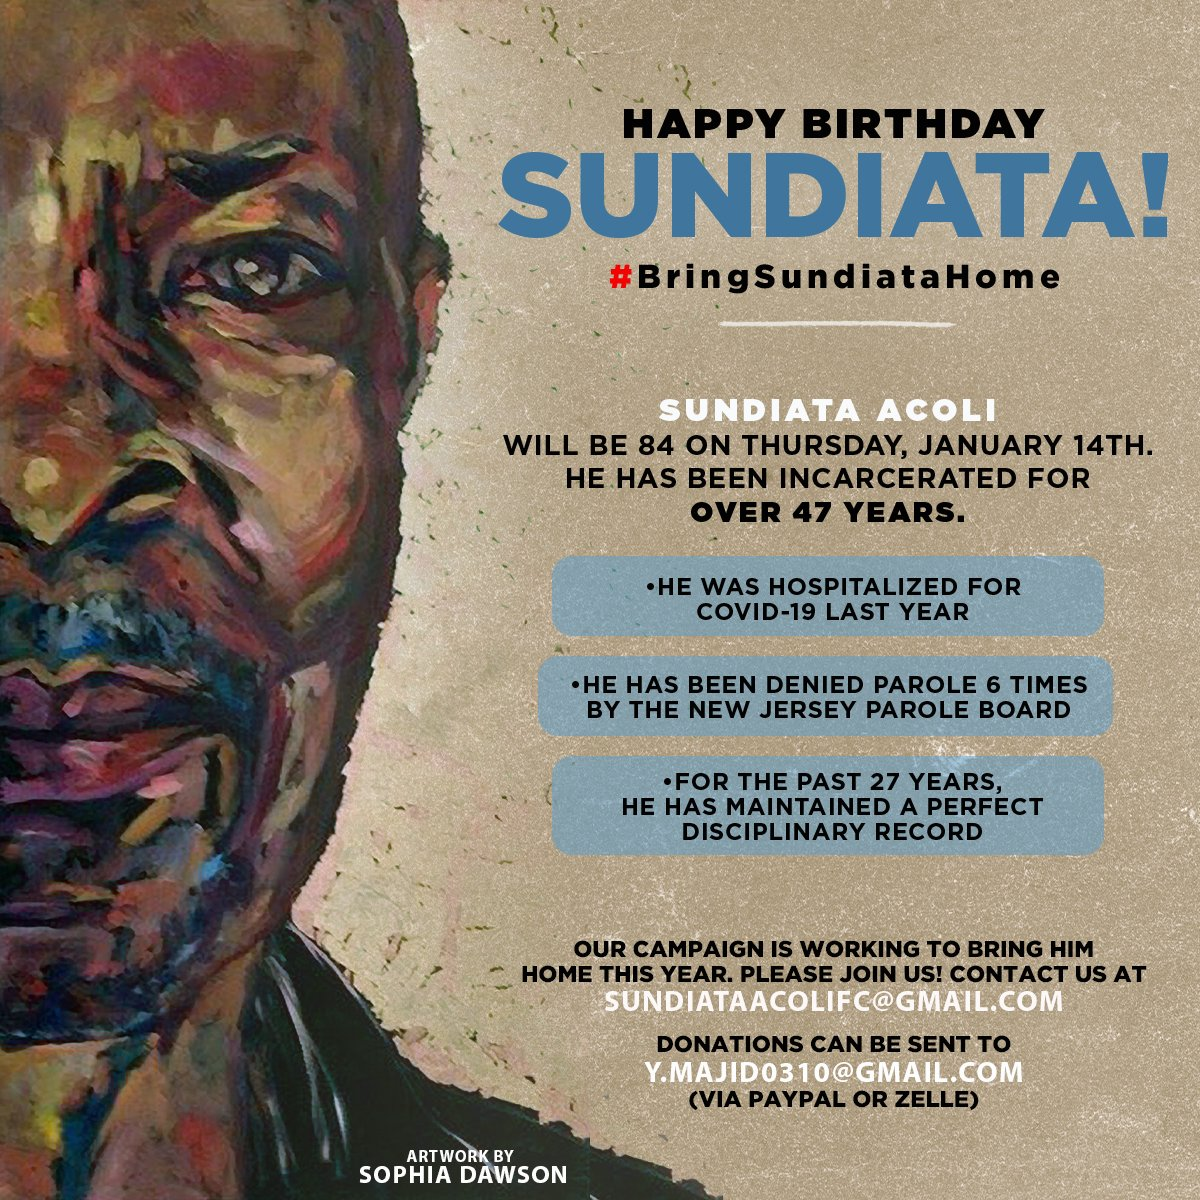 Calling all comrades! Baba Sundiata Acoli will be 84 years old on January 14th & deserves to be free! Sundiata was hospitalized with COVID-19 in April 2020, is an Elder & needs our immediate support. He has been incarcerated for 47 years. Please join us to #BringSundiataHome!!!